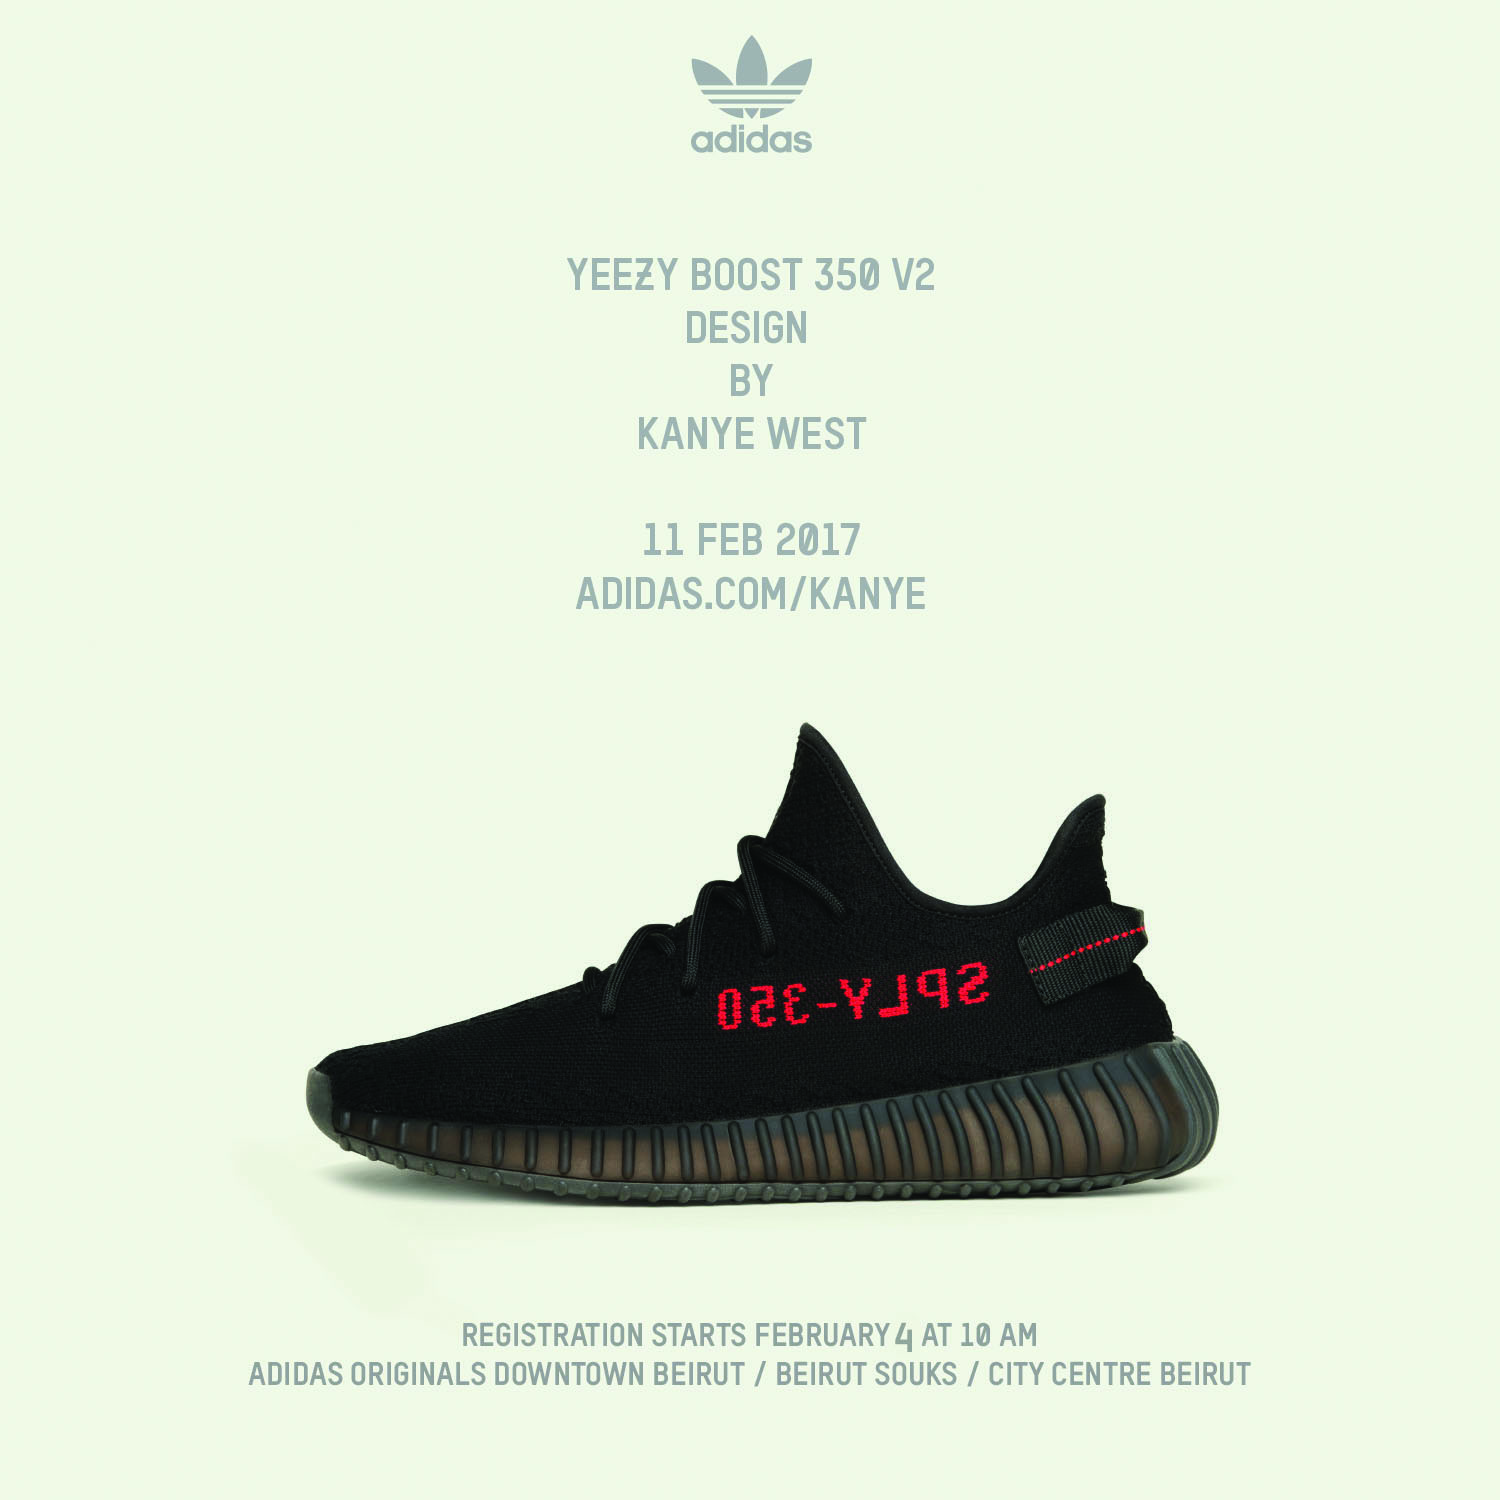 3d6c7c21c1a19 KANYE WEST and adidas announce the YEEZY BOOST 350 V2 Core Black ...